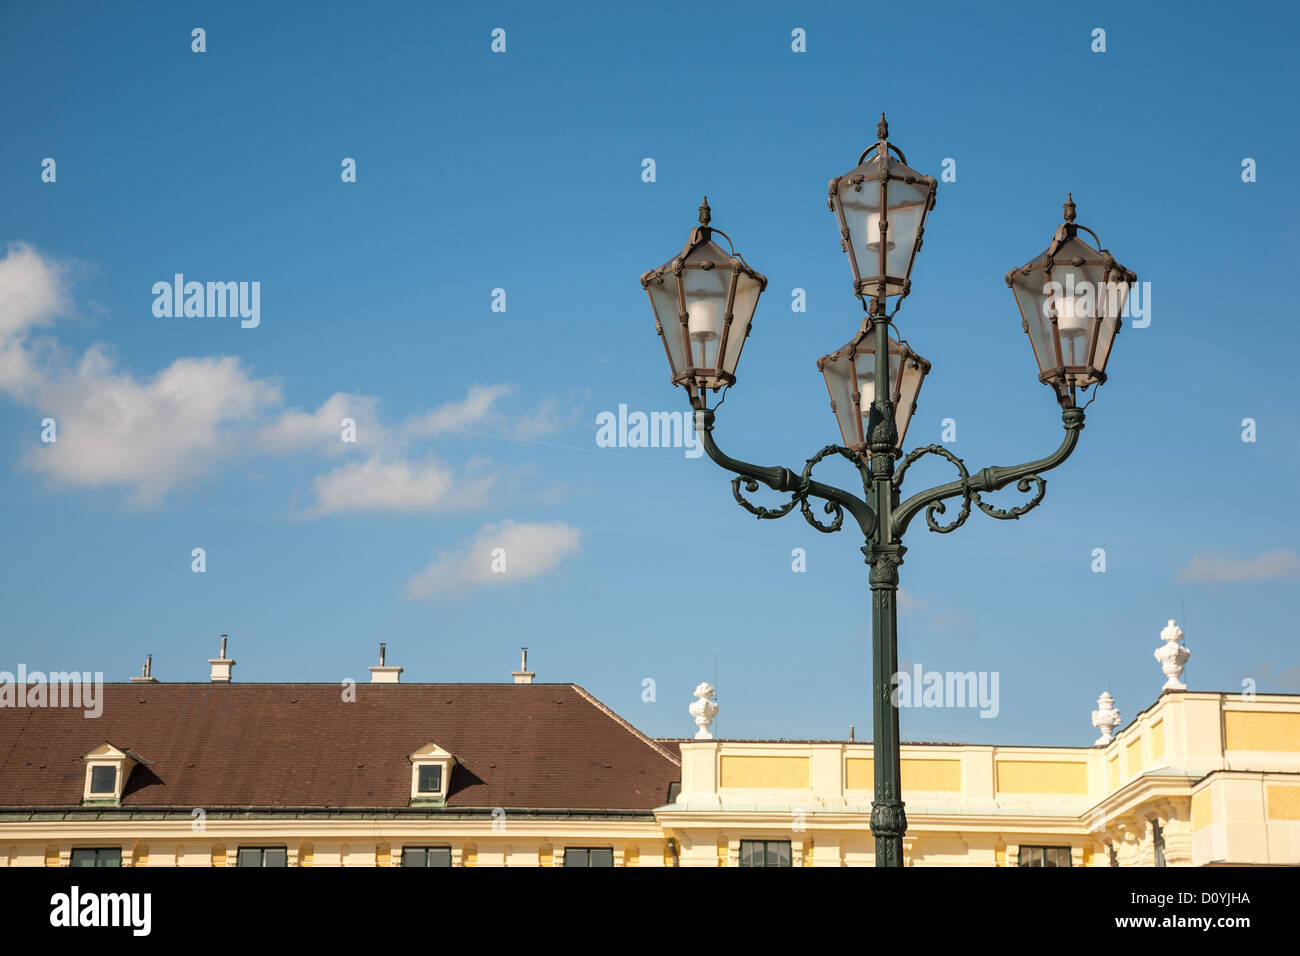 Ornate old iron street lamp inside the grounds of Vienna's yellow Schönbrunn Palace against a blue sky - Stock Image